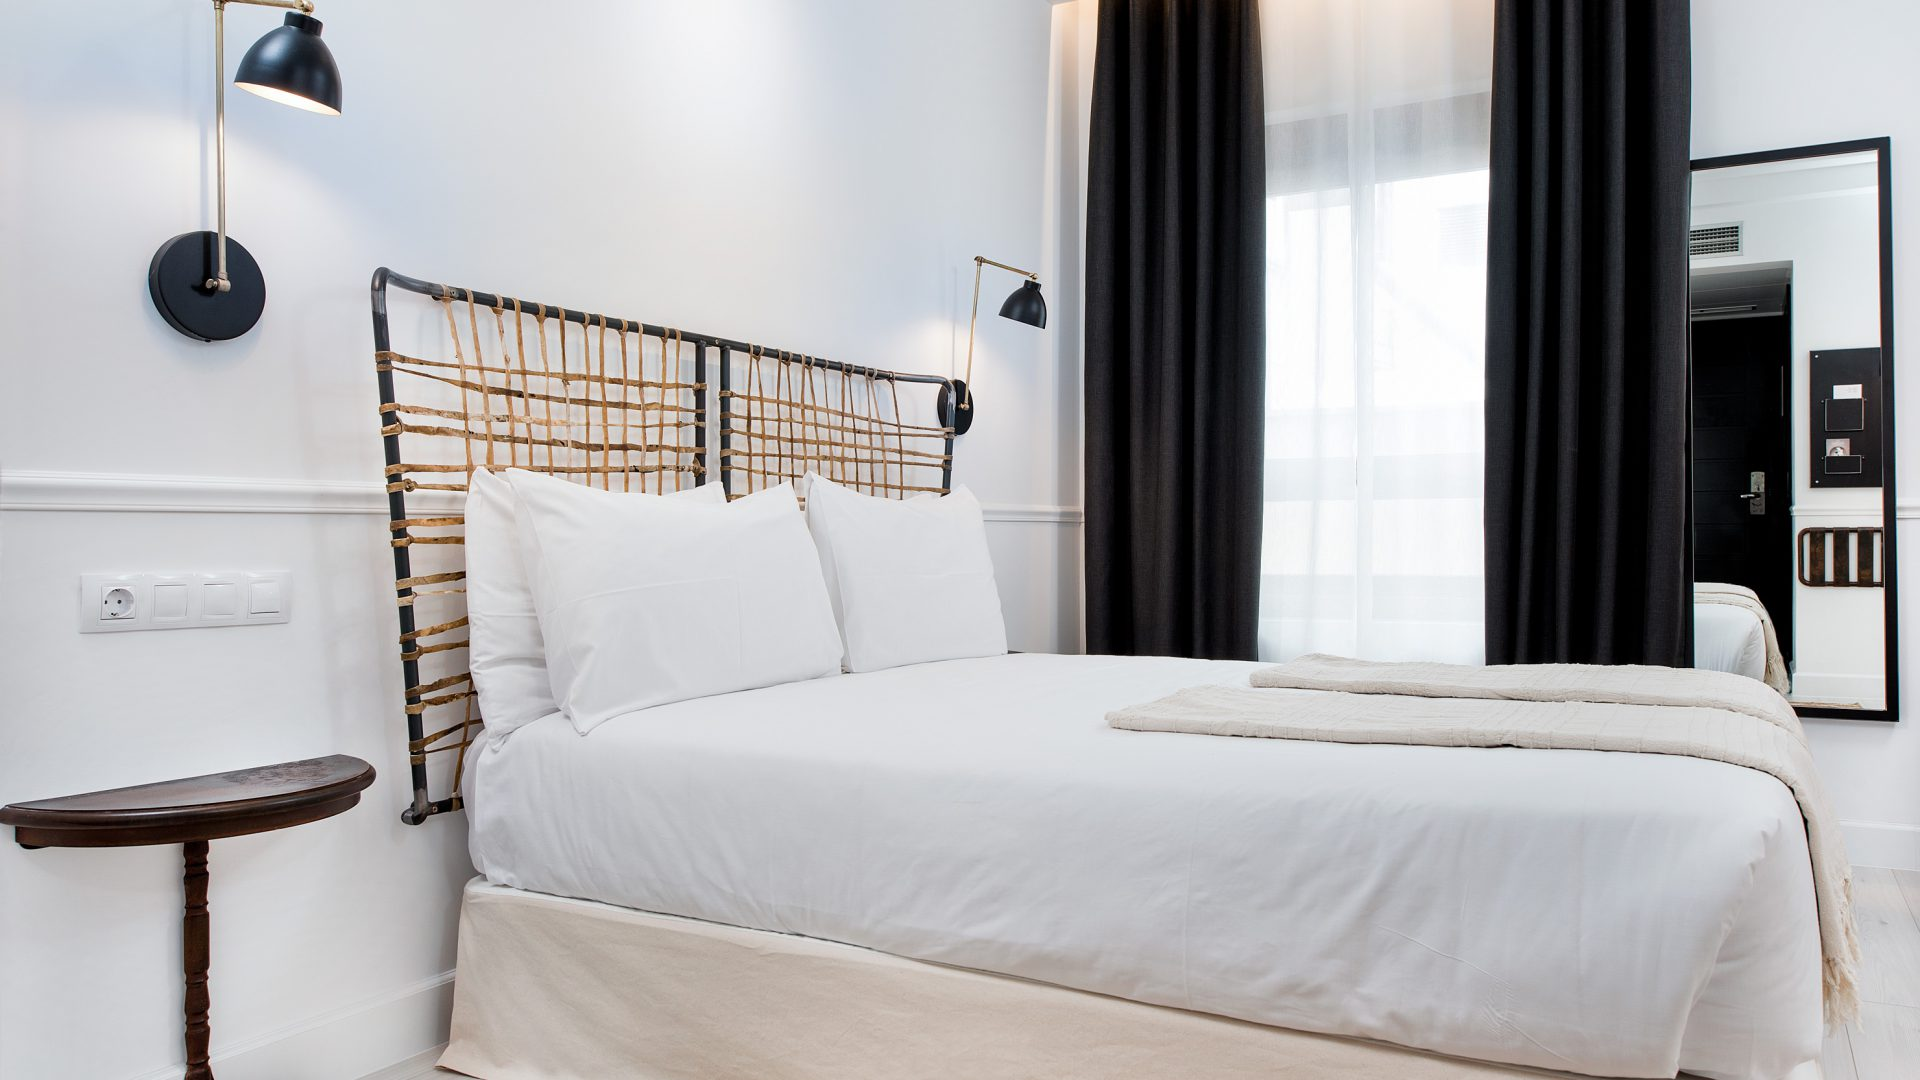 Easy room | Hotel 7 Islas Madrid